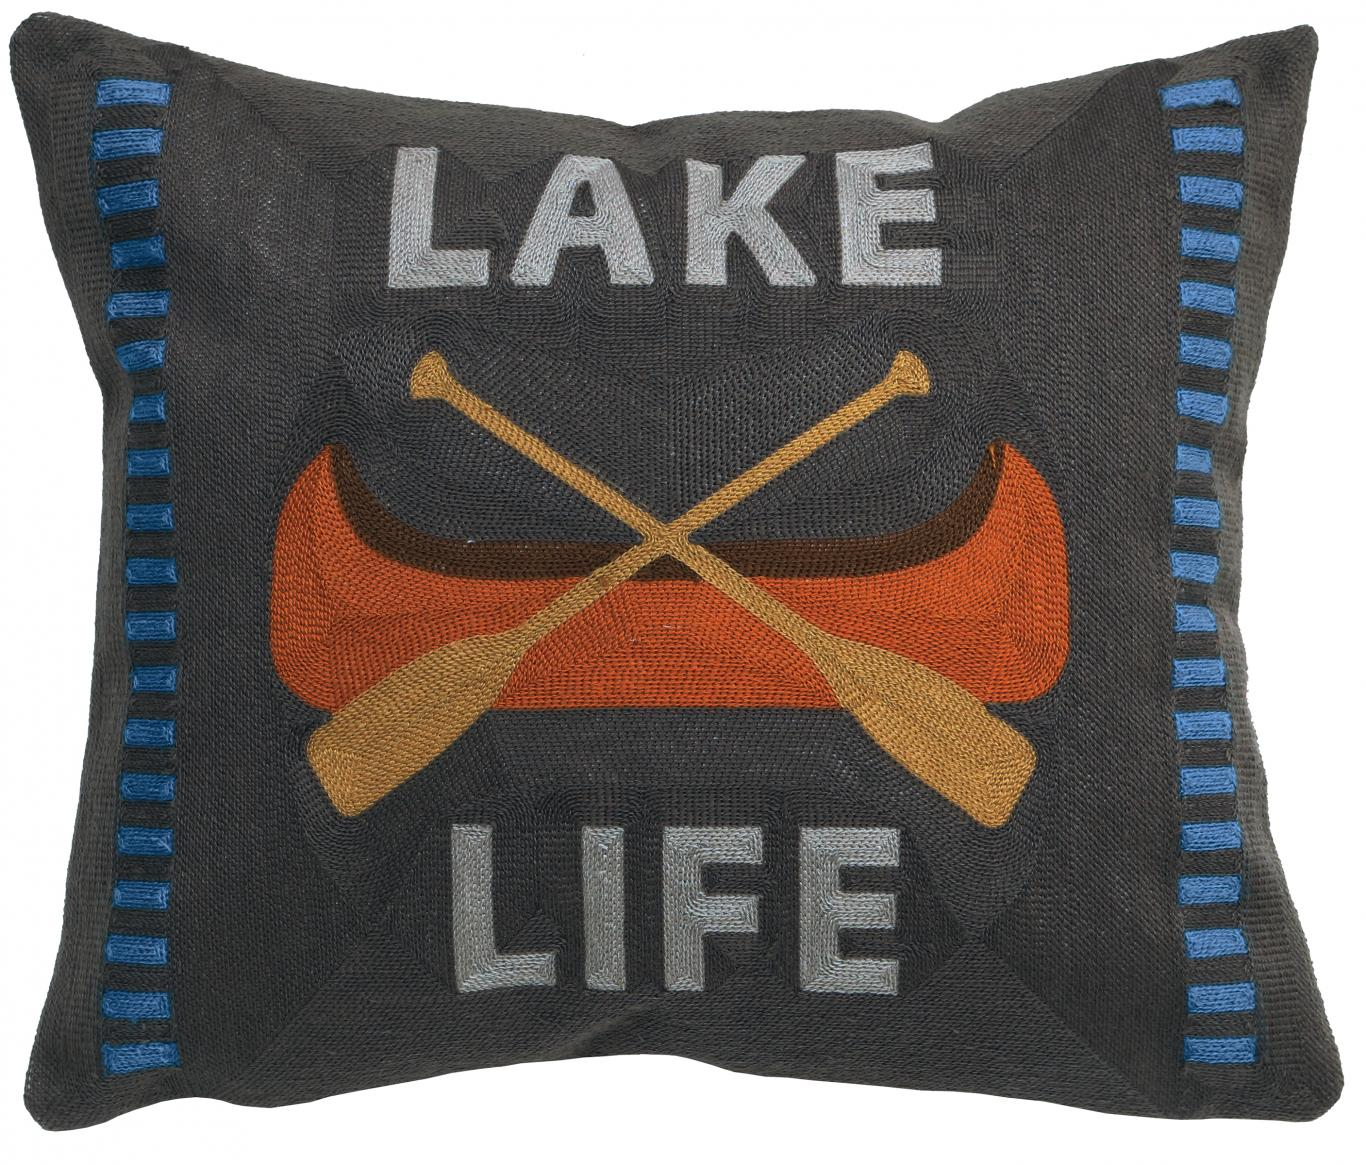 Peak Time - Lake Life Chain Stitch Pillow - Poly Filled